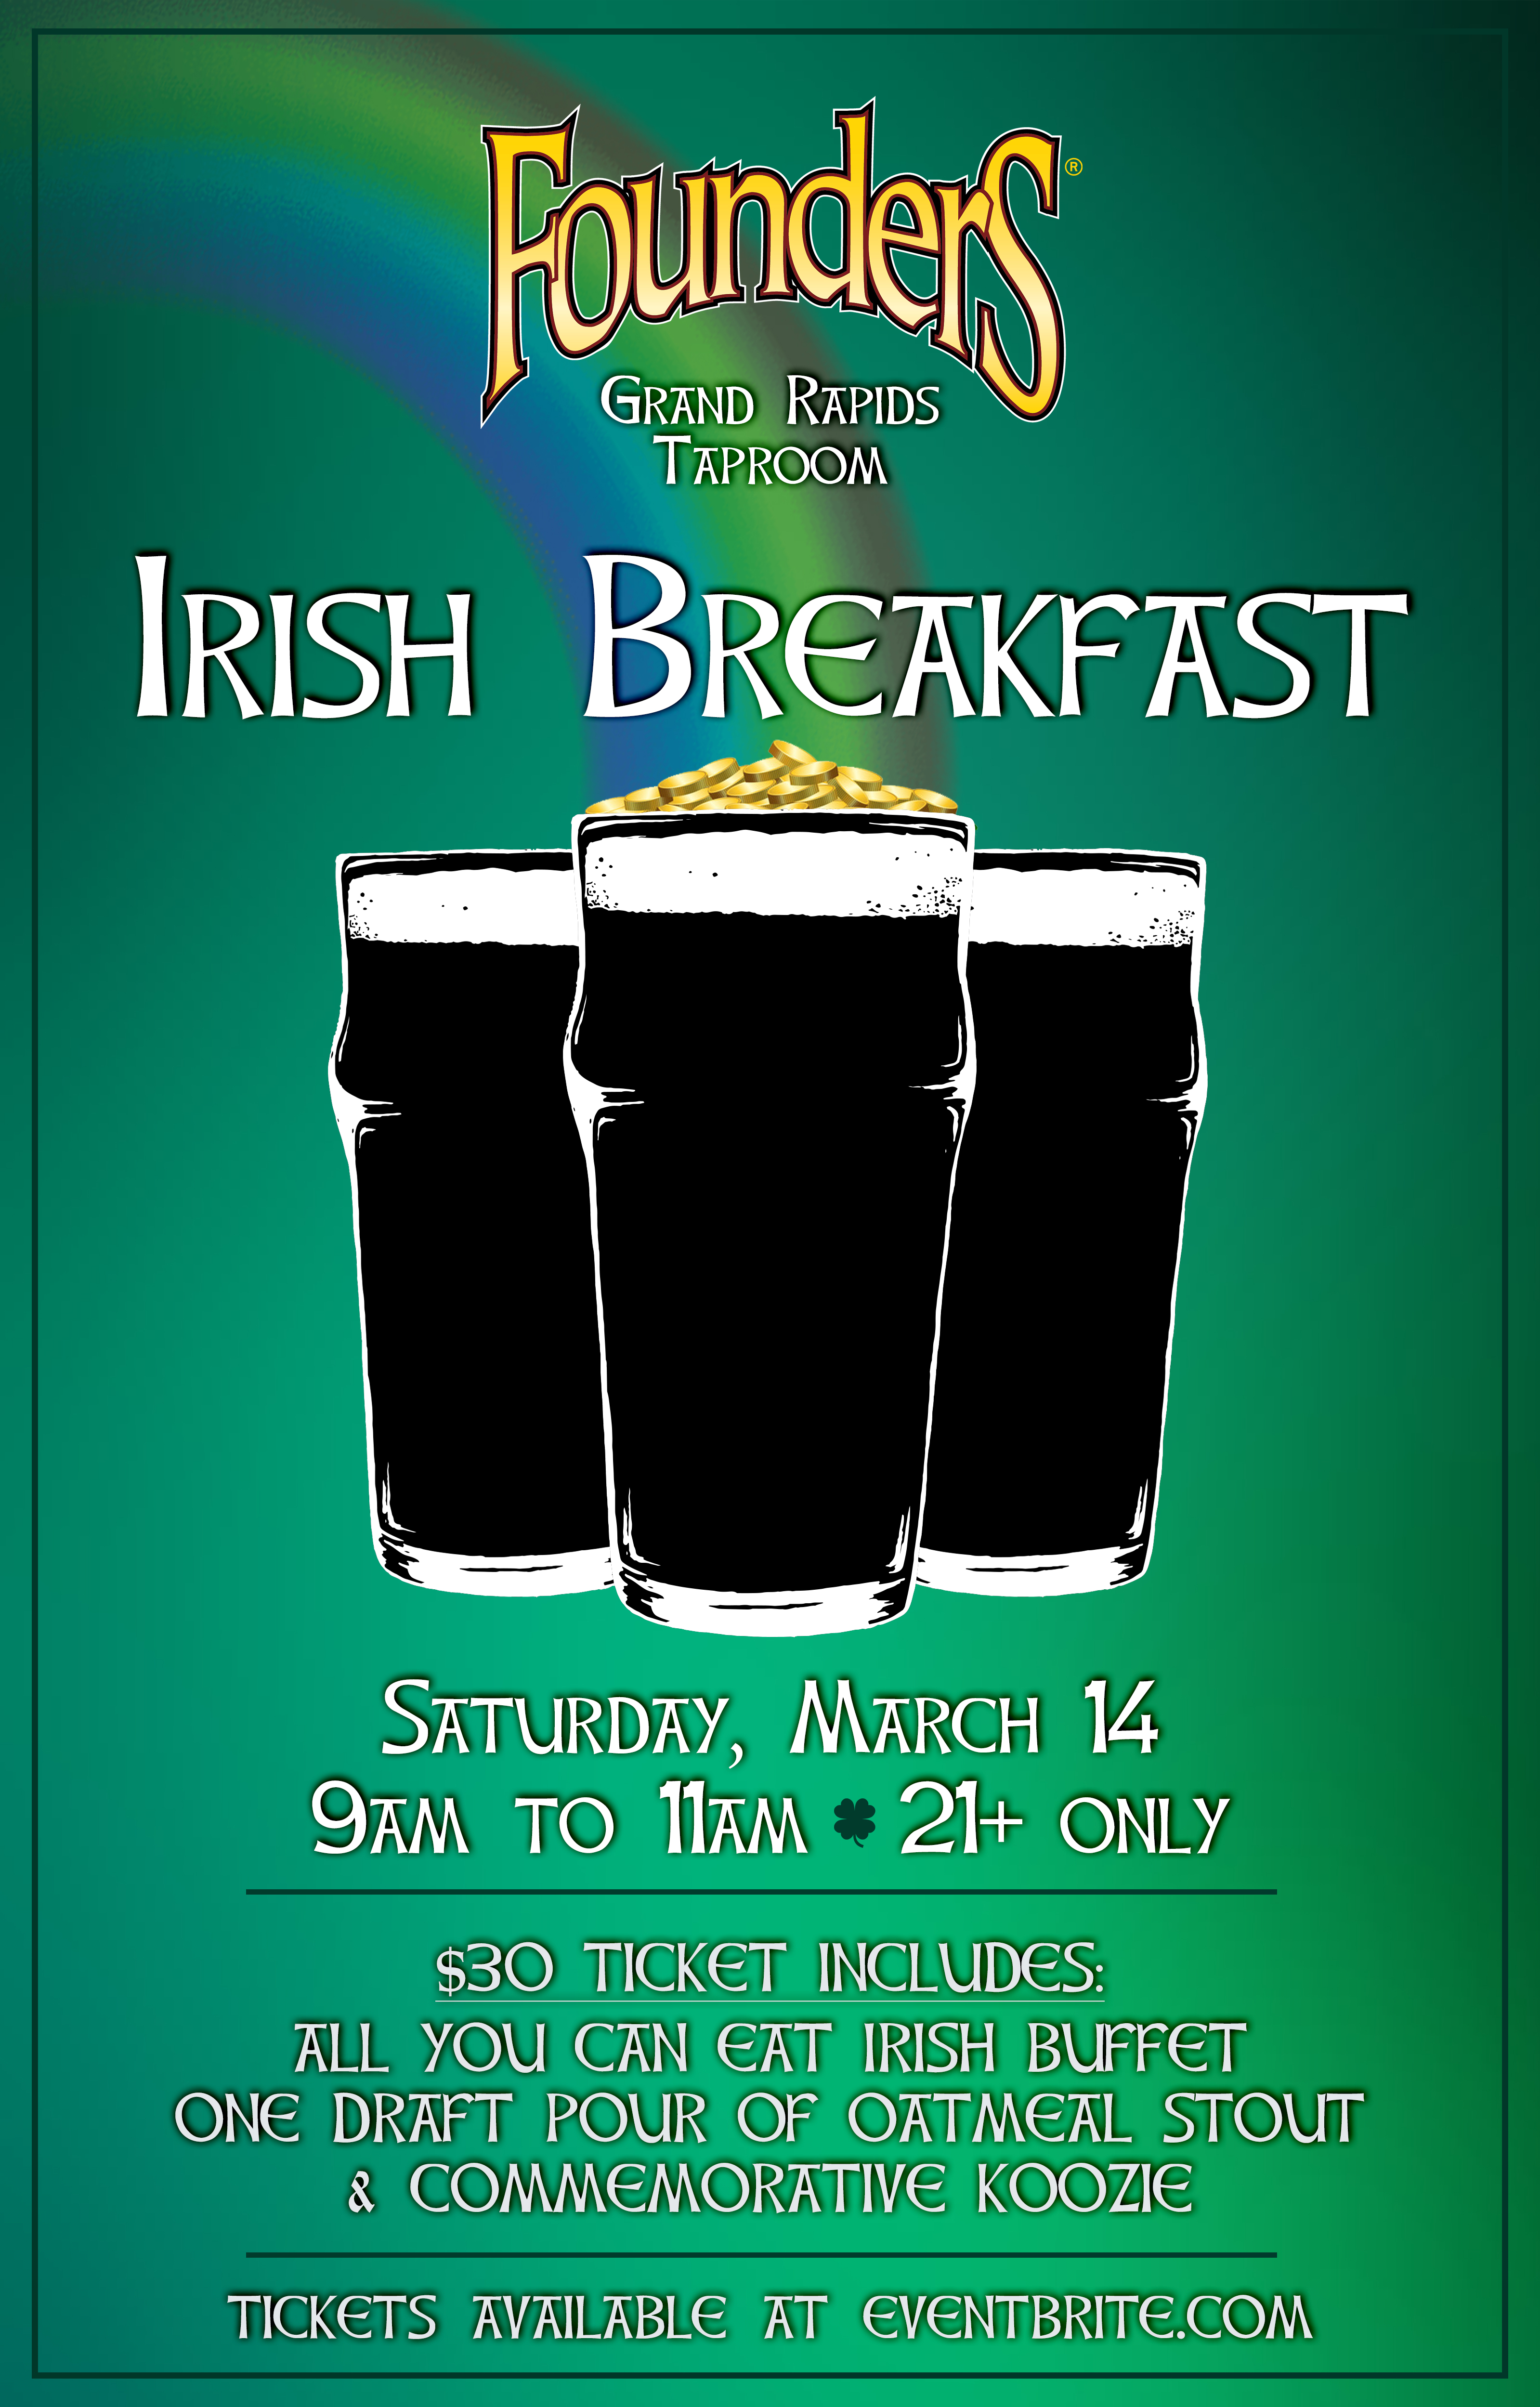 Irish Breakfast event poster hosted by Founders Brewing Co.